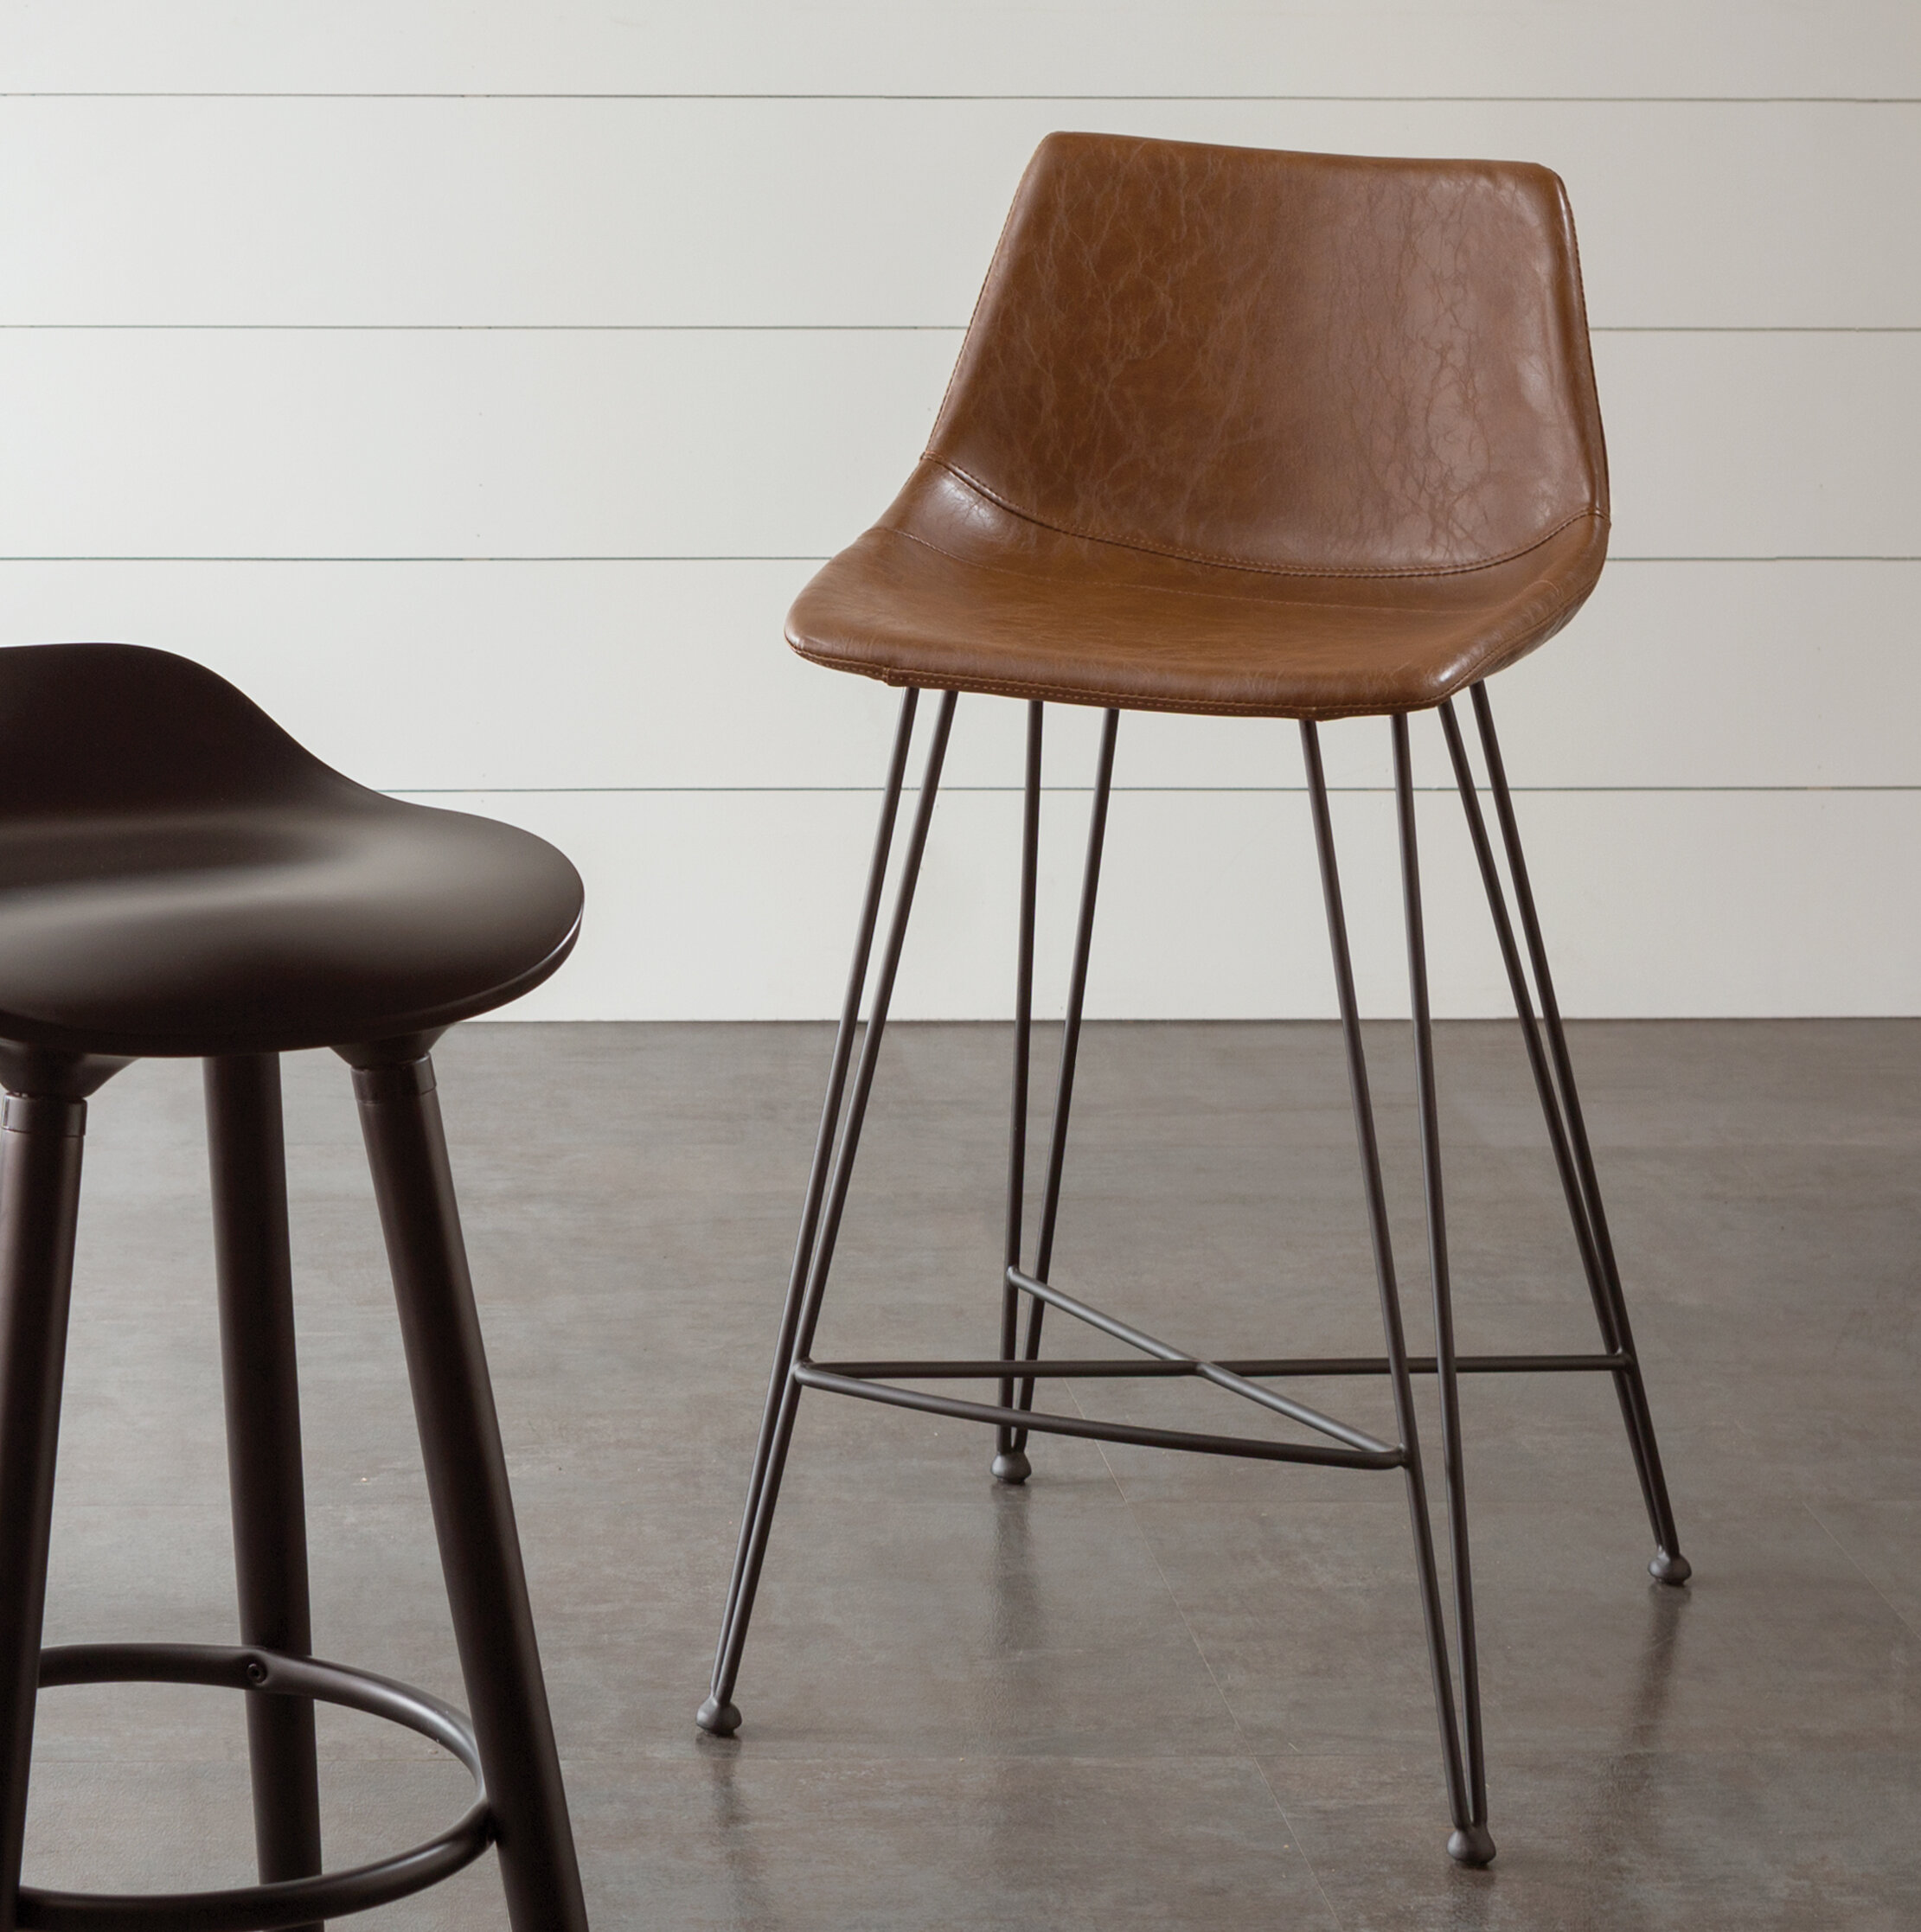 Fabulous 25 Bar Stools Summervilleaugusta Org Gmtry Best Dining Table And Chair Ideas Images Gmtryco